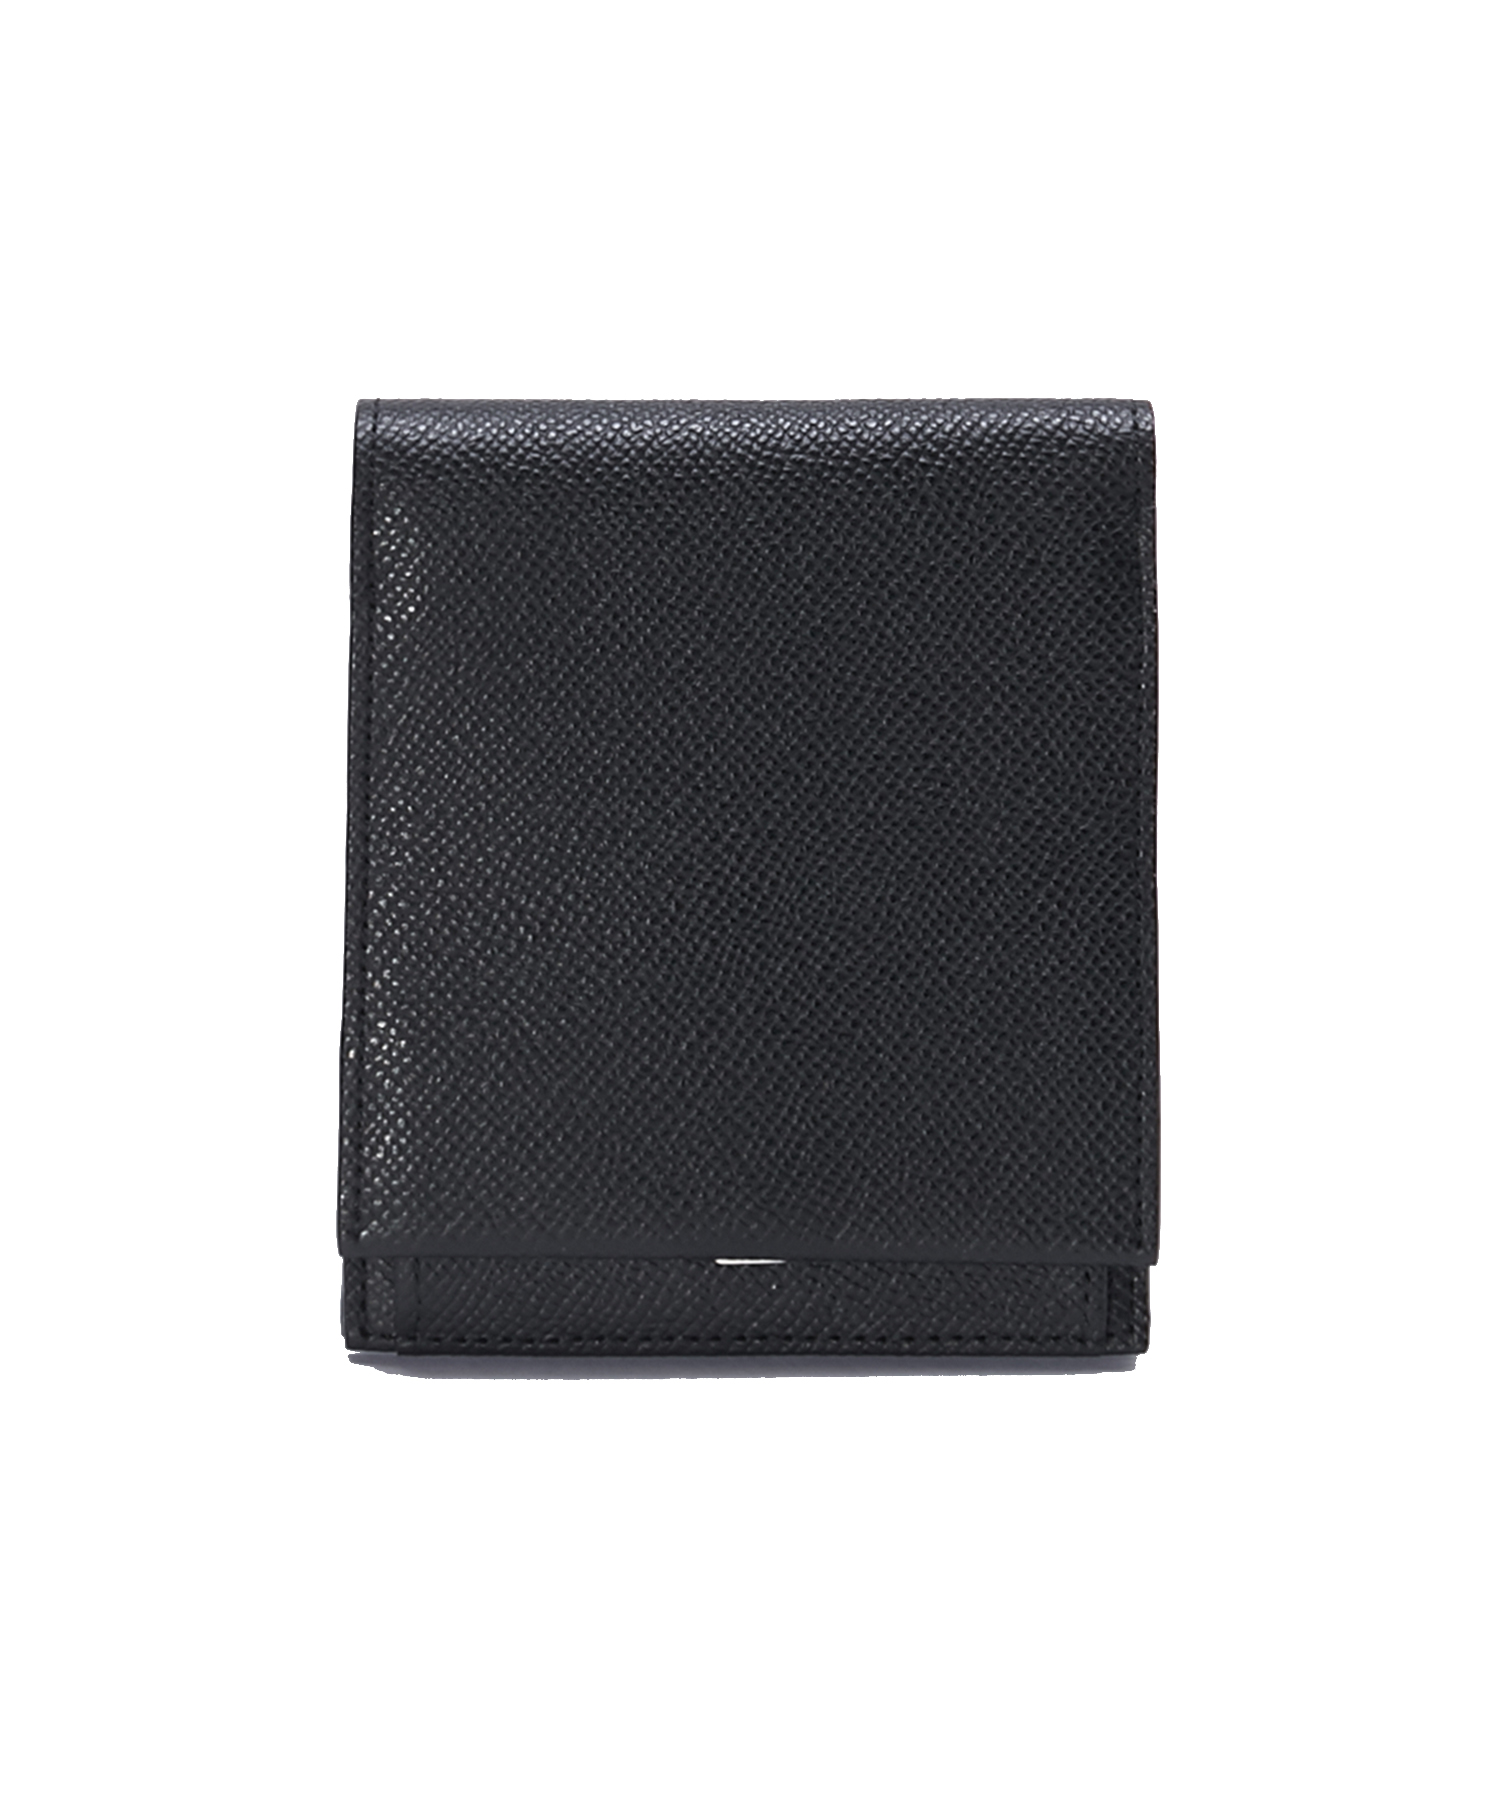 WALLET 【N.HOOLYWOOD COMPILE × PORTER】